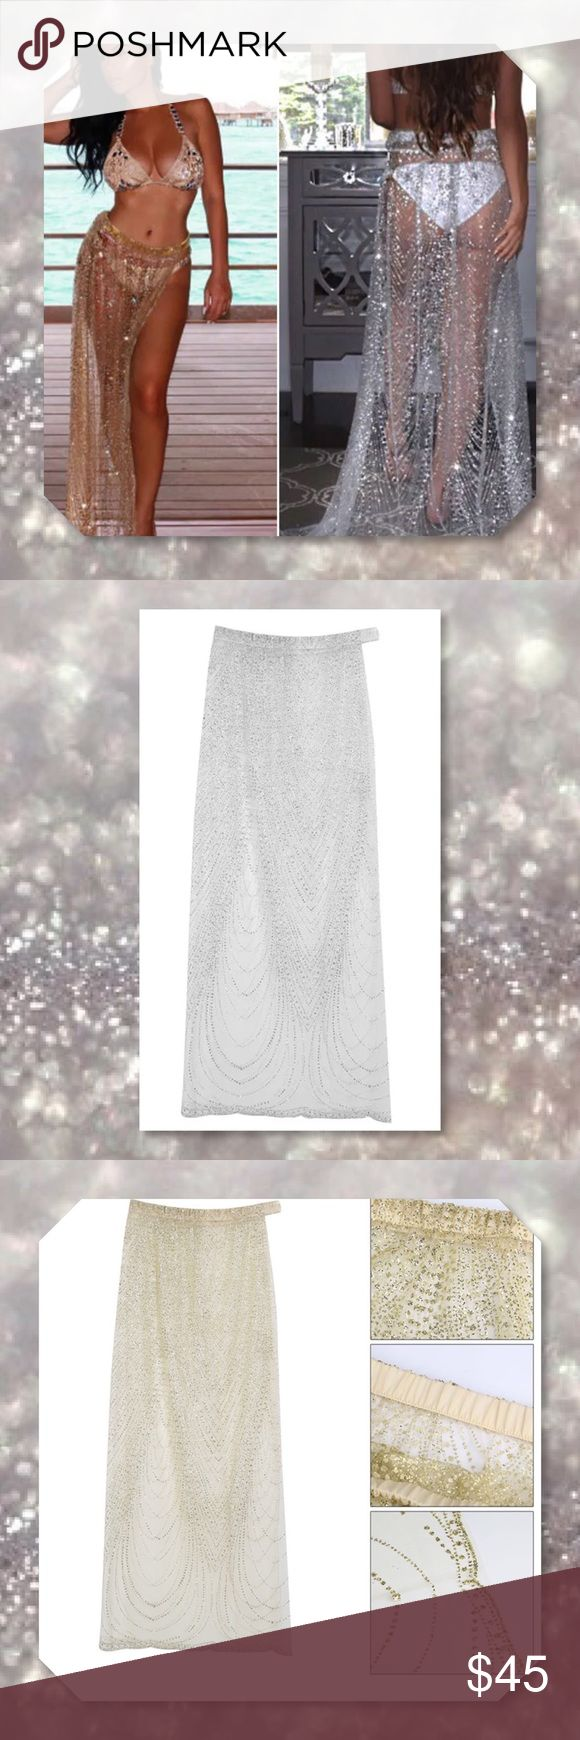 "LAST 1Silver Sparkly Sarong Cover Up Skirt Features: 100% Brand new and high quality! A must have beach fashion wear maxi skirt cover up Style: Sparkly Color: Silver Material: Polyethylene fibre + Cotton + Sequins Size: Tag XL; Hem: 39.4""; Waist: 29.1""; Length: 41.7"" Package Included: 1 Coverup   ⭐️⭐️SORRY NO TRADES AND LOWBALL OFFERS WILL BE IGNORED ⭐️⭐️  ✂️LOWBALL OFFERS WILL BE IGNORED✂️ Glam Squad 2 You Swim Coverups"